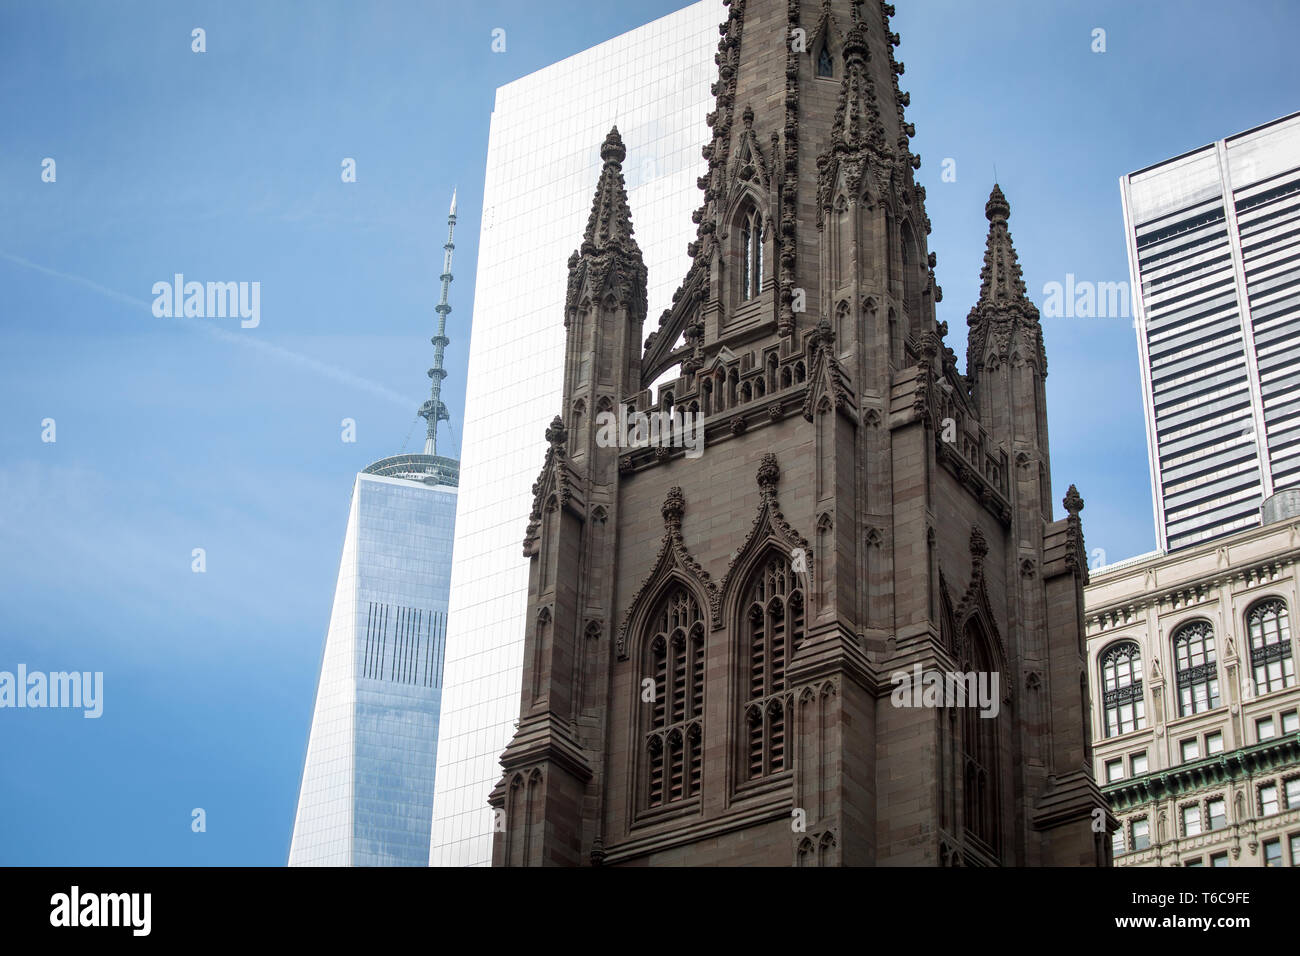 The spear of the Trinity Church. In the background is the spear of the World Trade Center 1, also known as Freedom Tower. - Stock Image